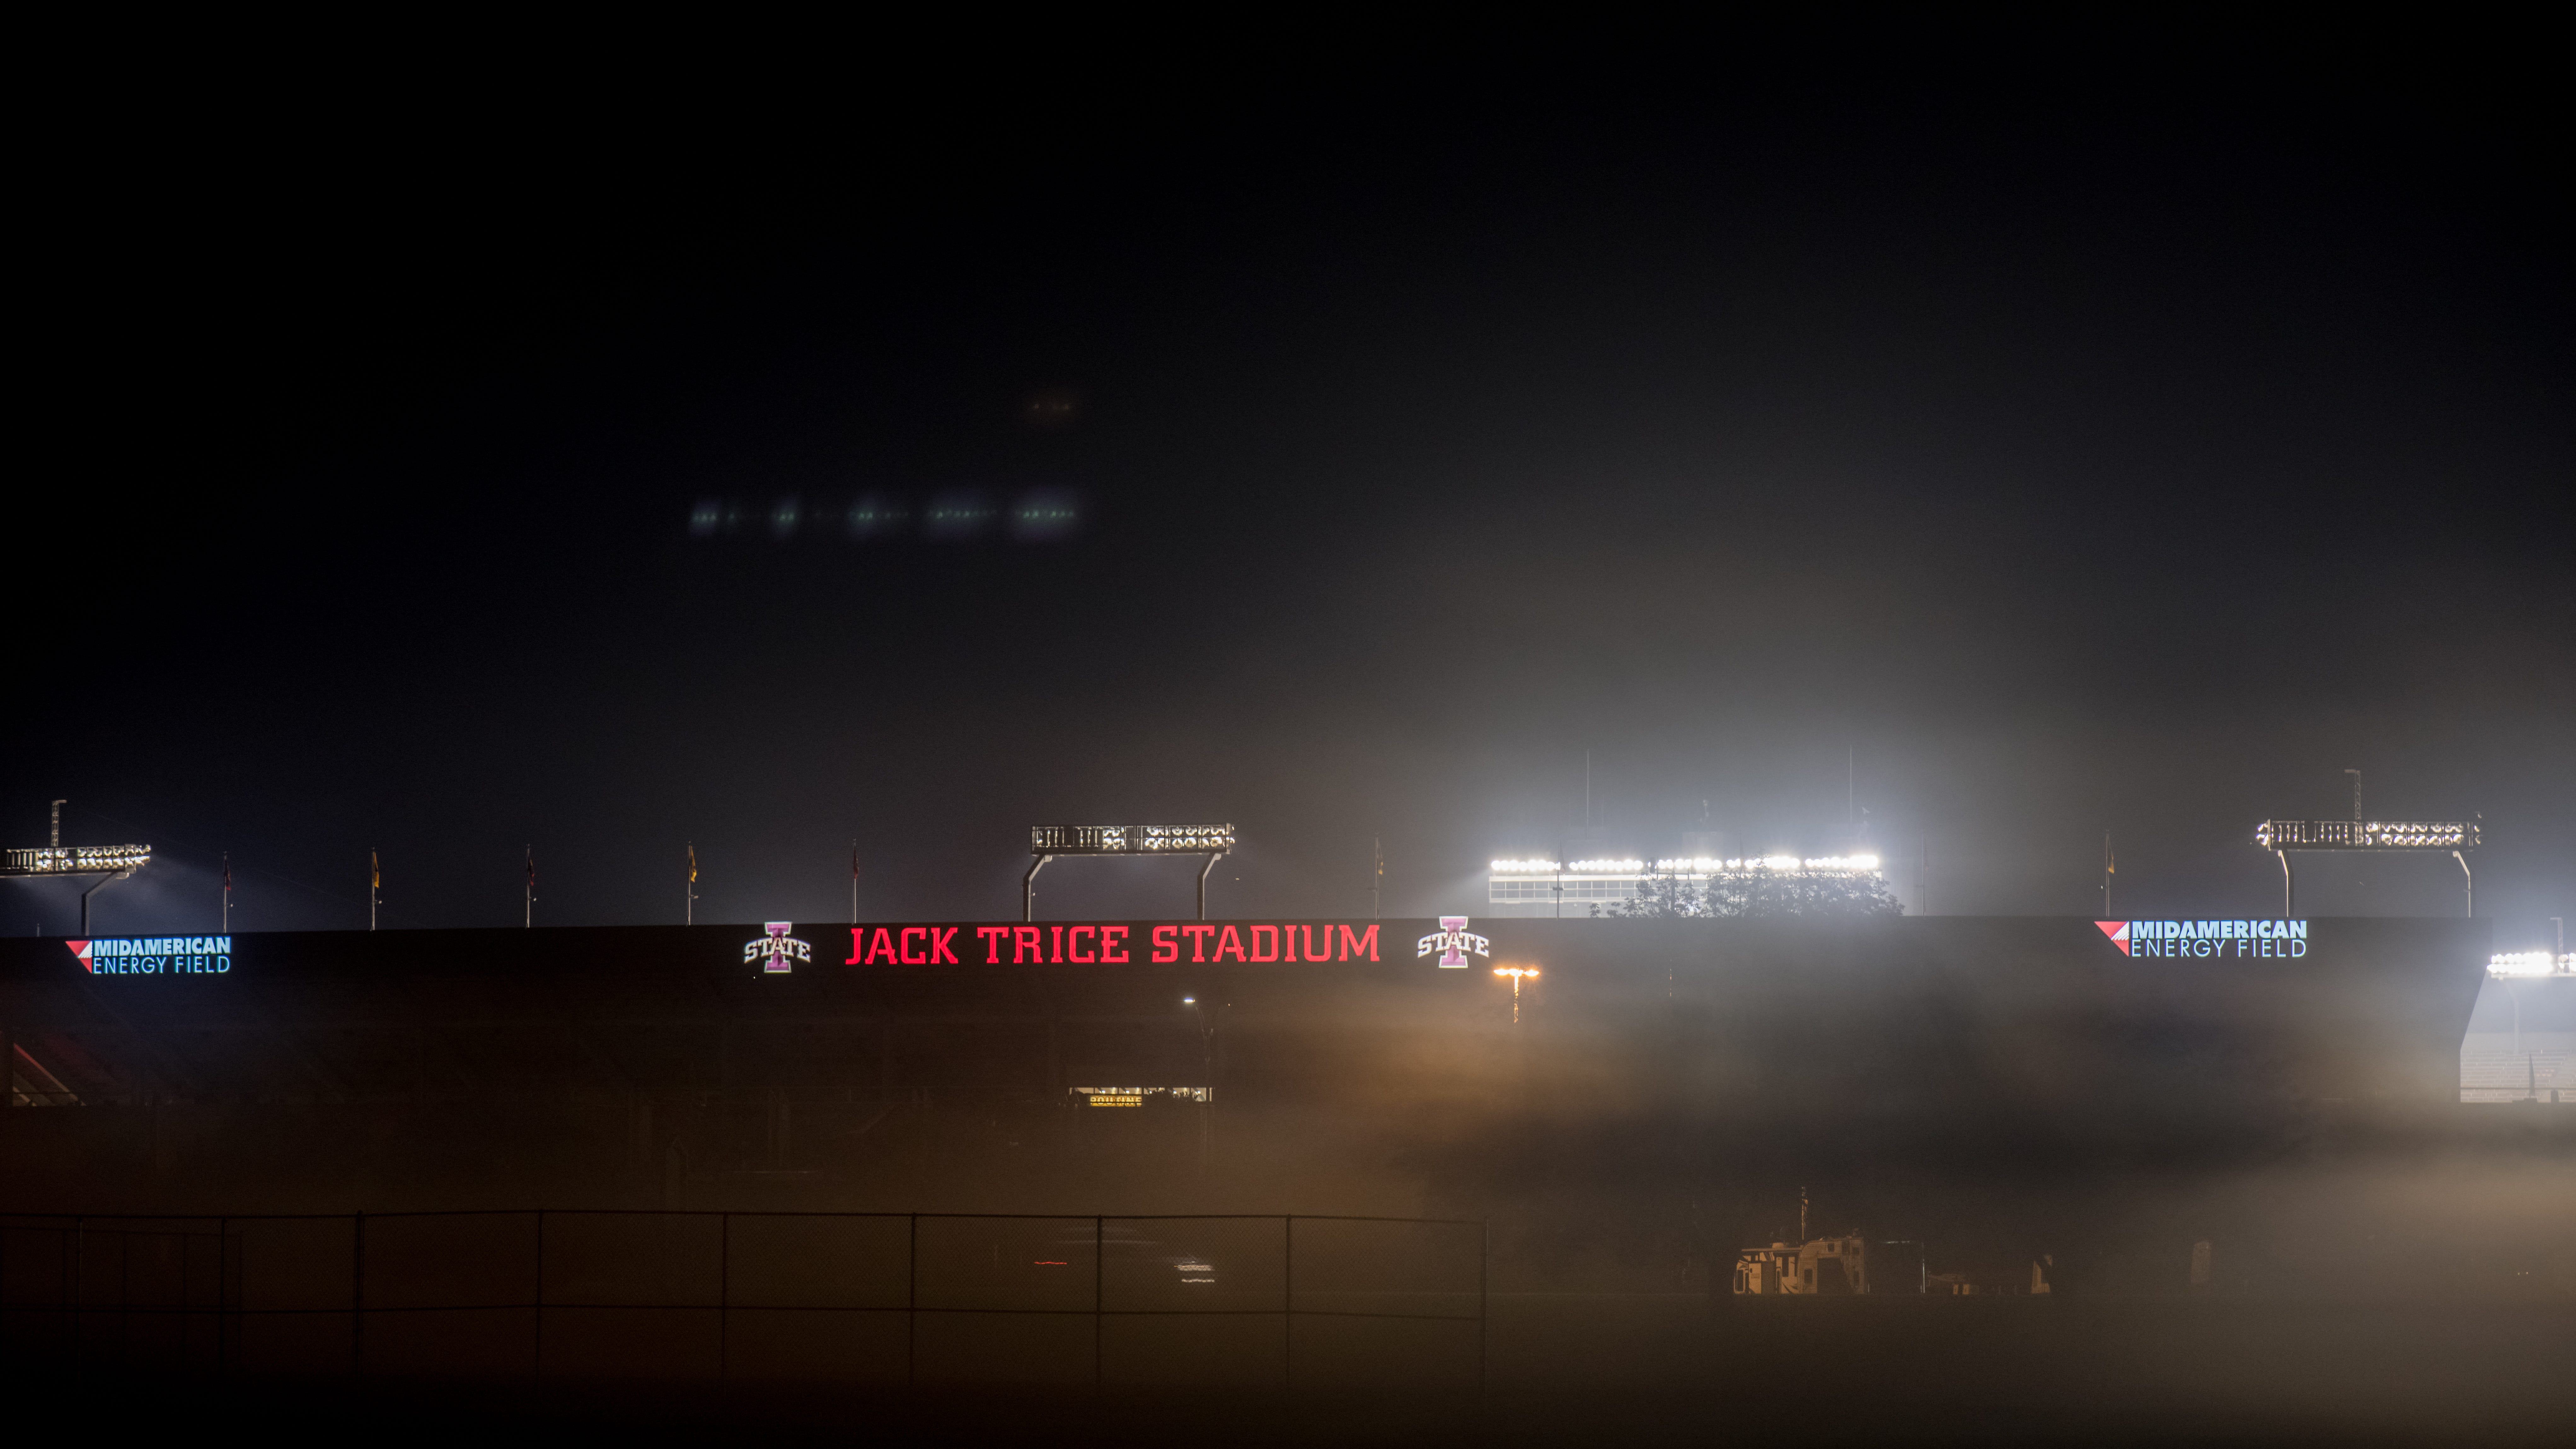 The marquee of Jack Trice Stadium, the lone FBS stadium named after a Black man, shines on a misty night.